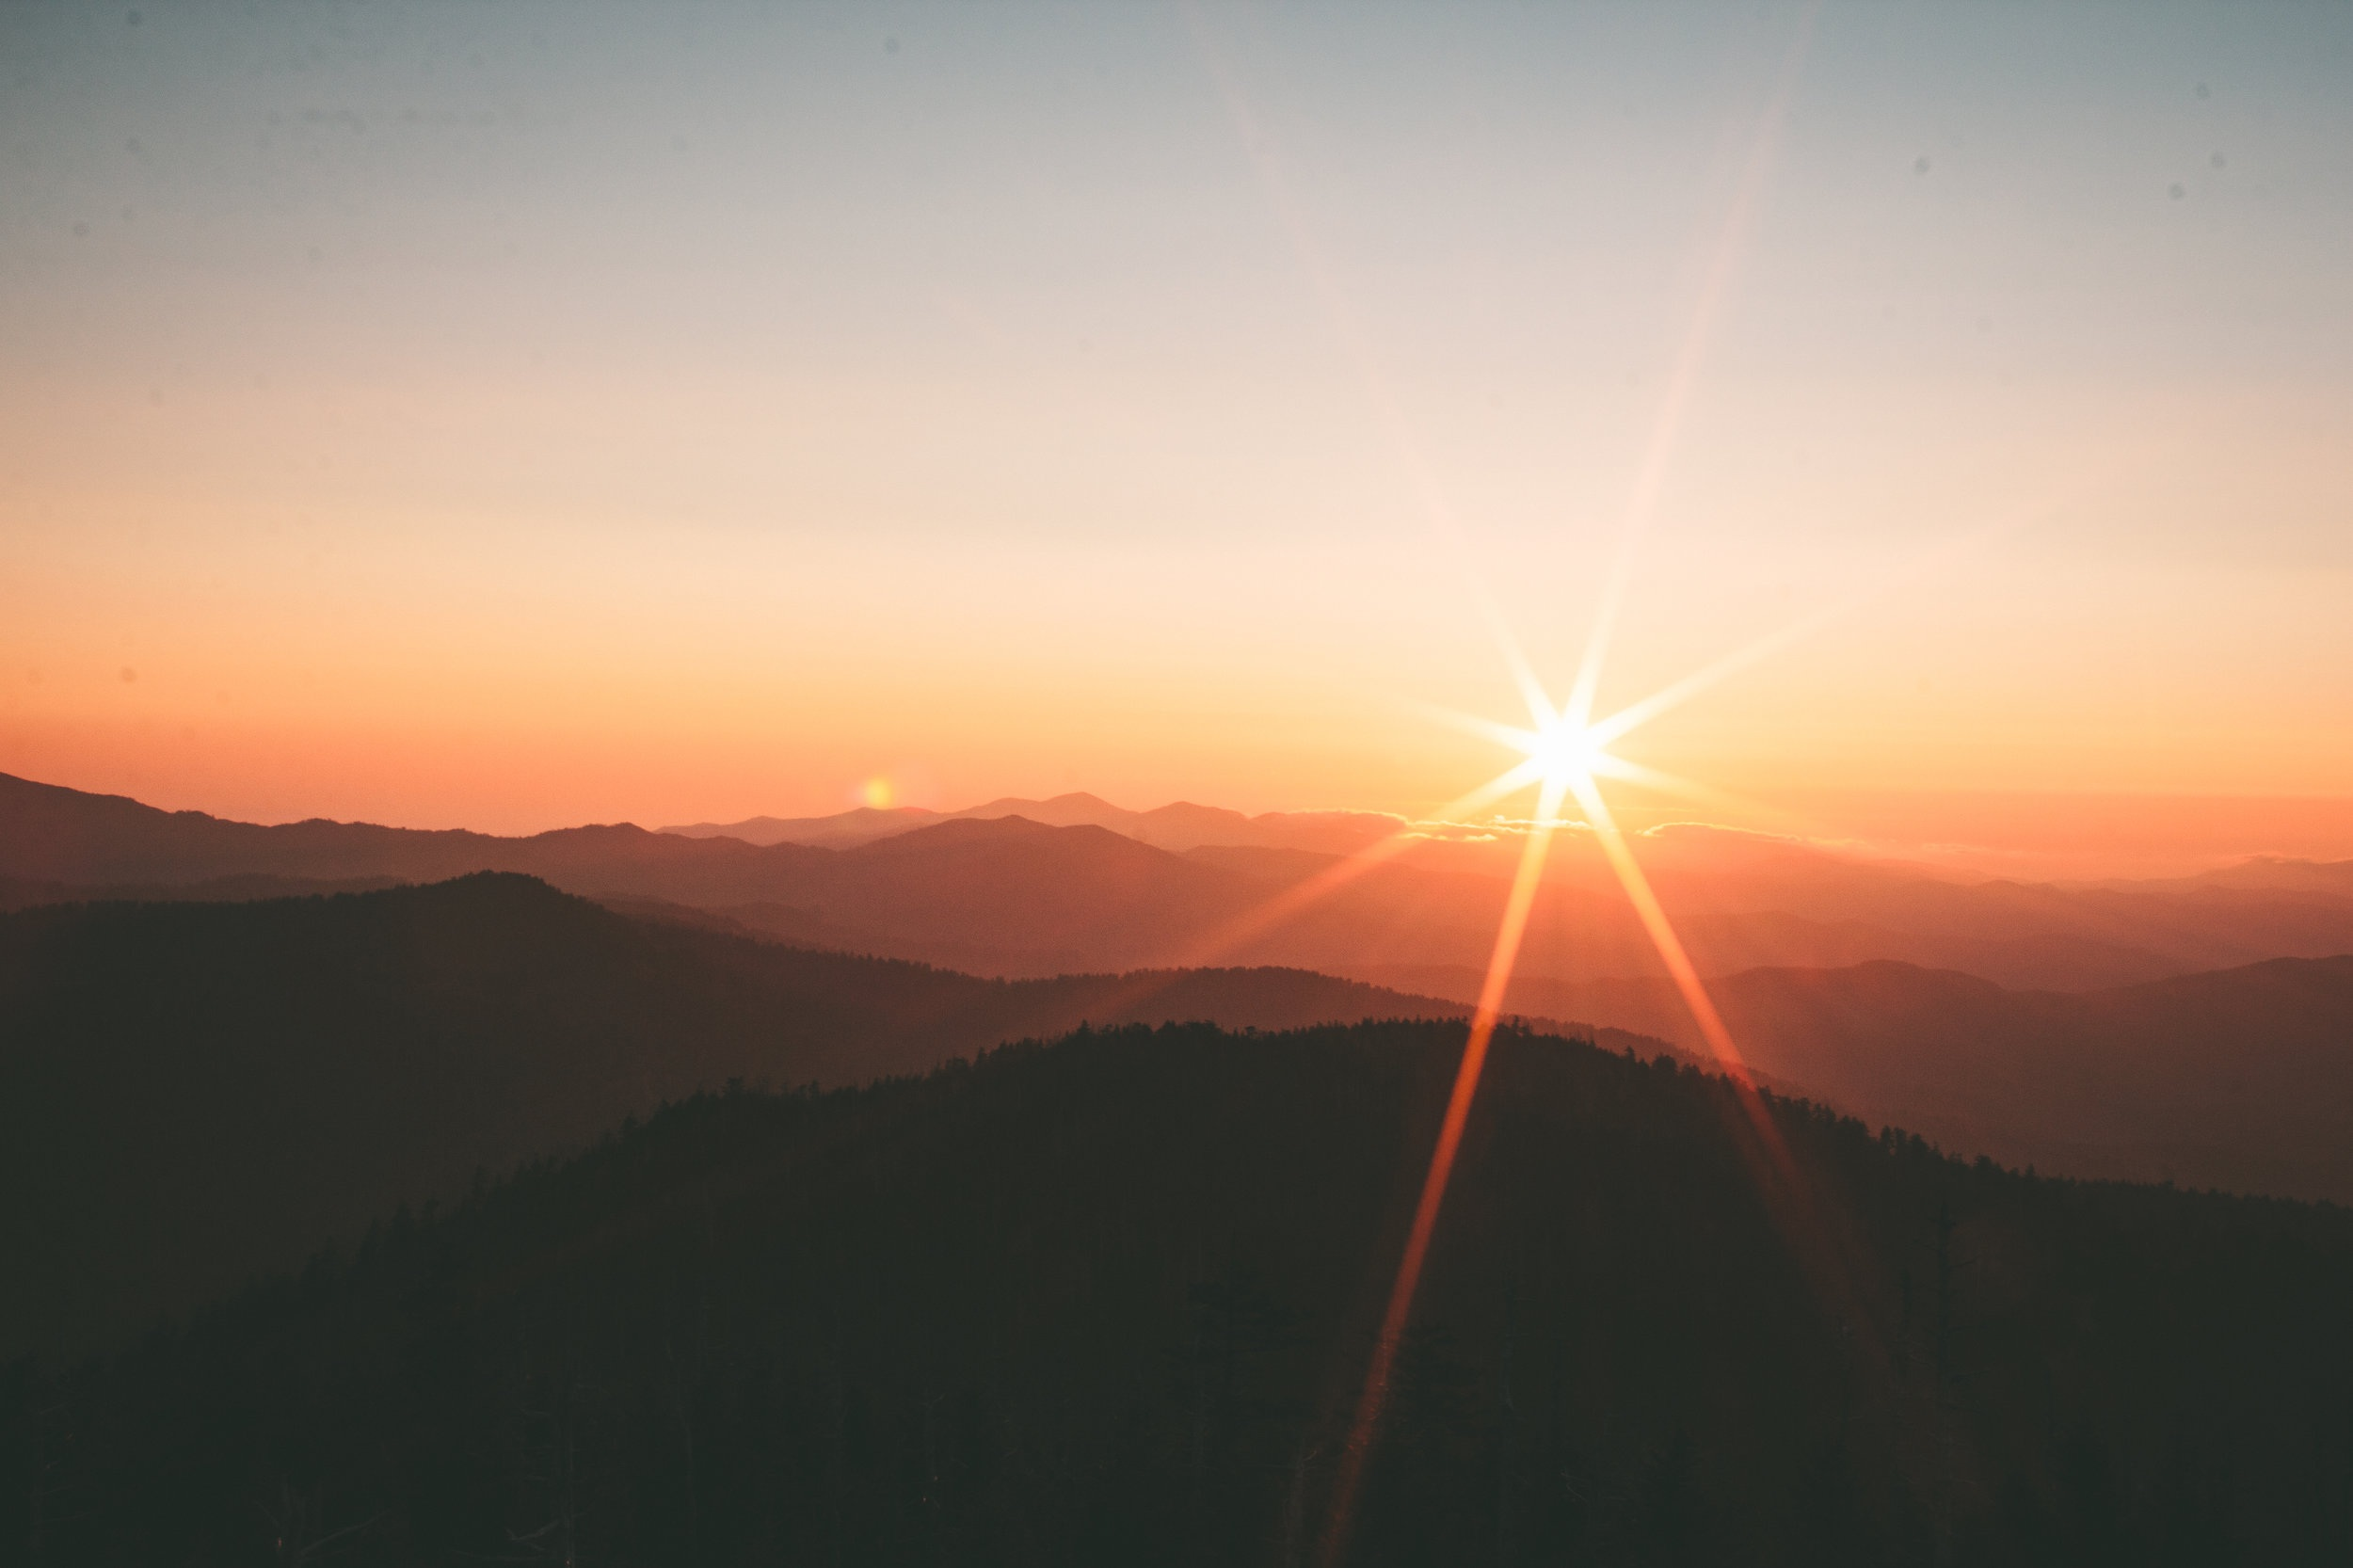 the glory of god - We are committed to the glory of God. All the previous commitments find their true end in the glorifying of God.The means to this end, in all that we do, is the exaltation of Jesus Christ, by the power of the Holy Spirit.